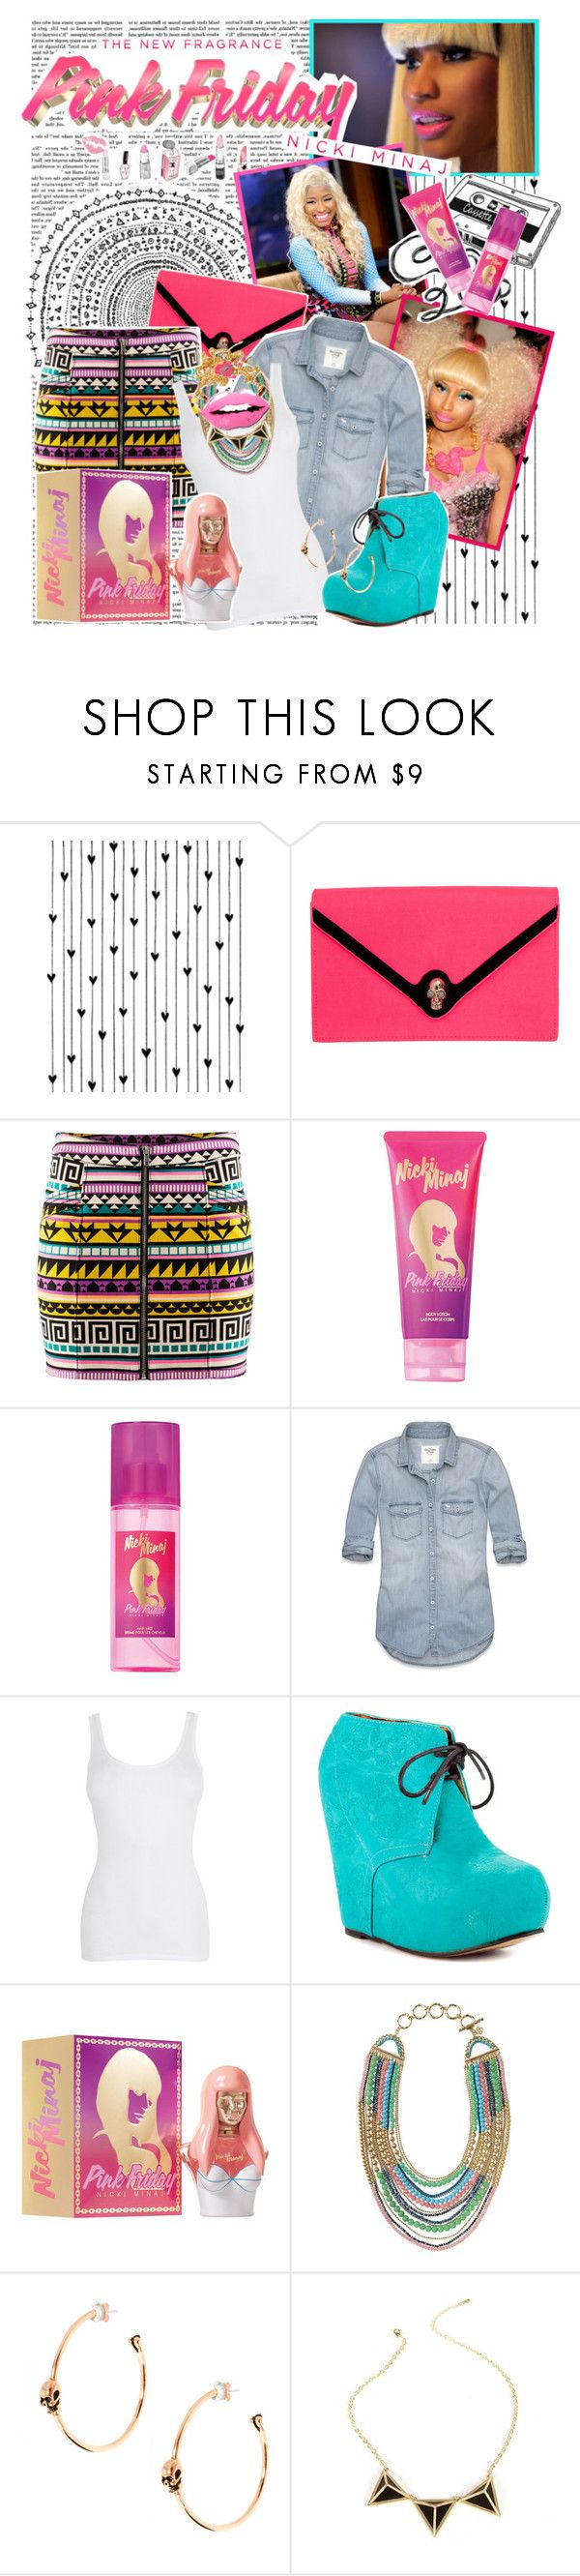 """""""Totally Fearless with Pink Friday Nicki Minaj"""" by crystal85 ❤ liked on Polyvore featuring moda, Camp, Nicki Minaj, Mariah Carey, CASSETTE, H&M, Abercrombie & Fitch, Iron Fist, Stella & Dot e Wildfox"""